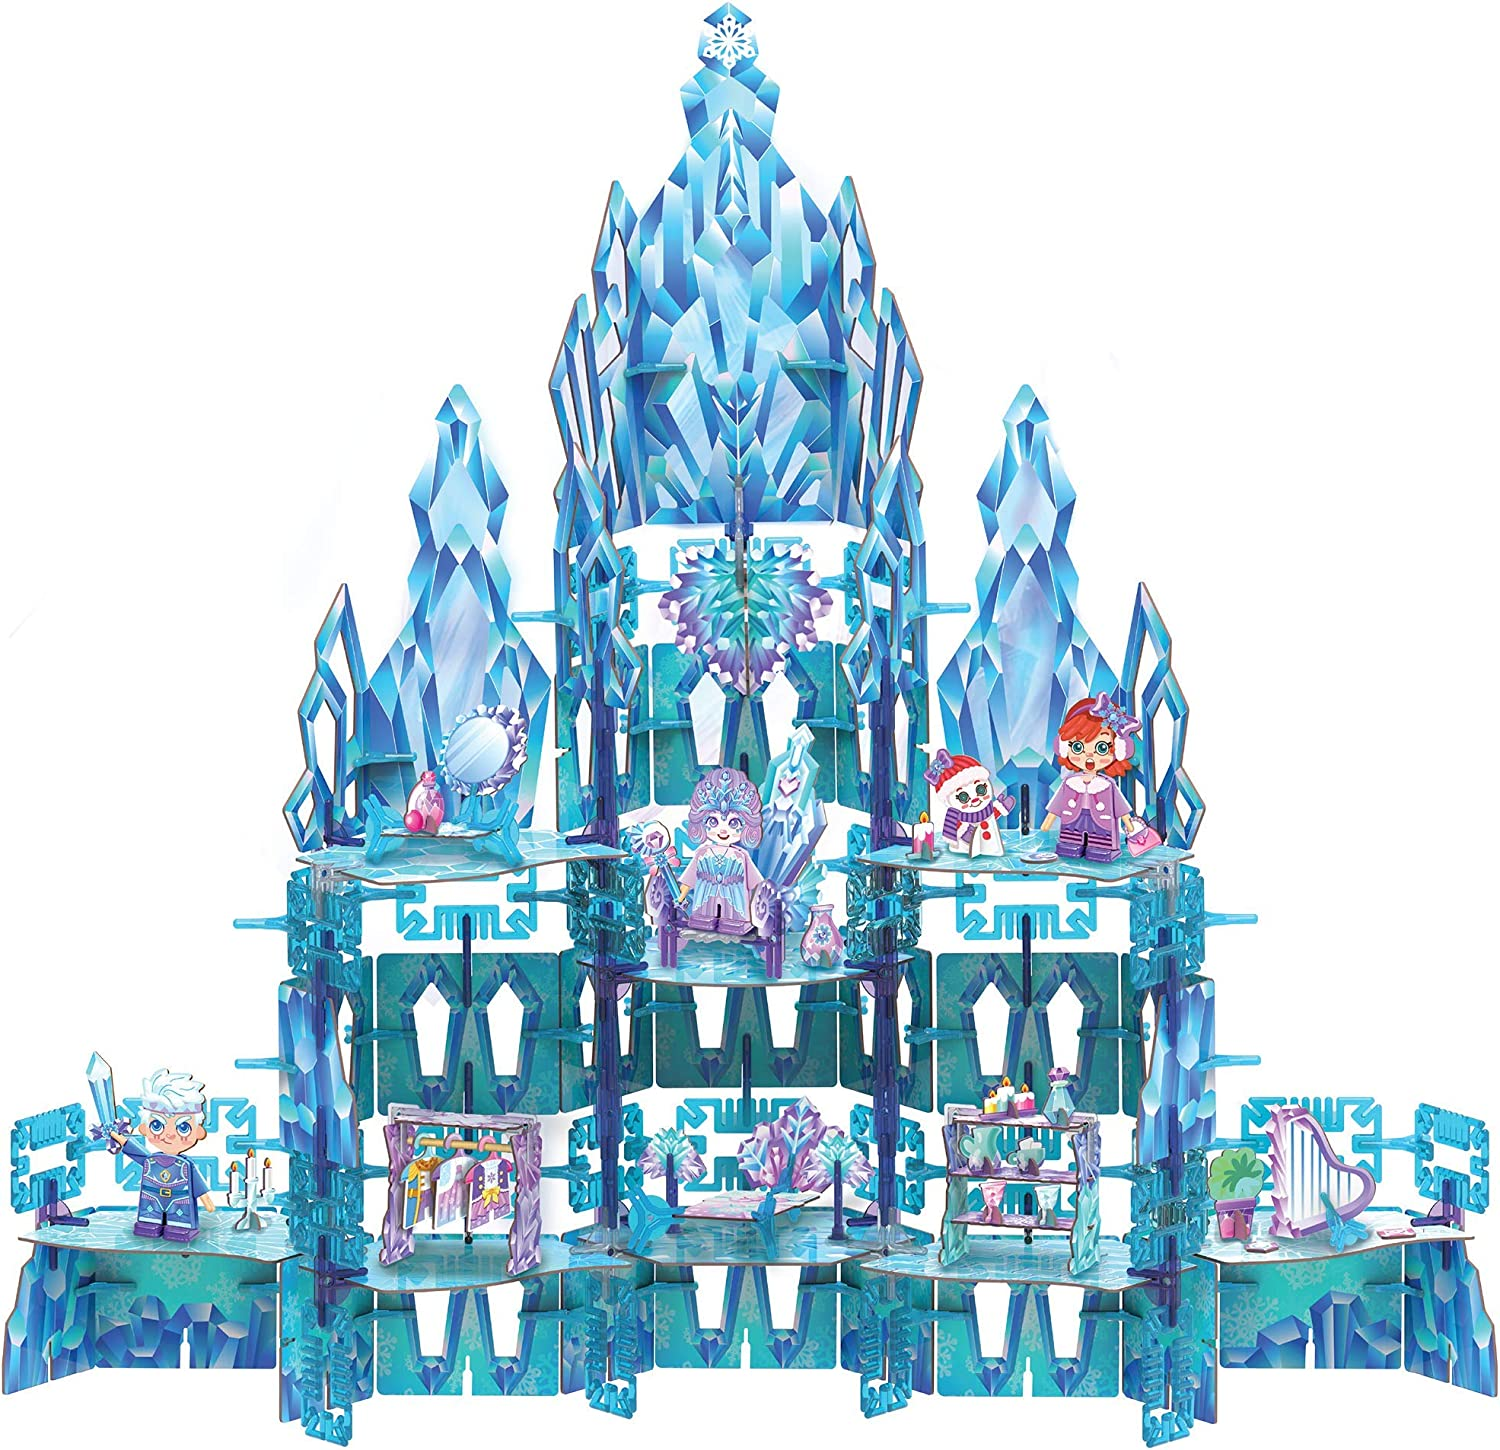 PINXIES Enchanted Ice Castle Kids Play Set, Build-Your-Own Magical Toy - STEM Toy for Girls Ages 6-10